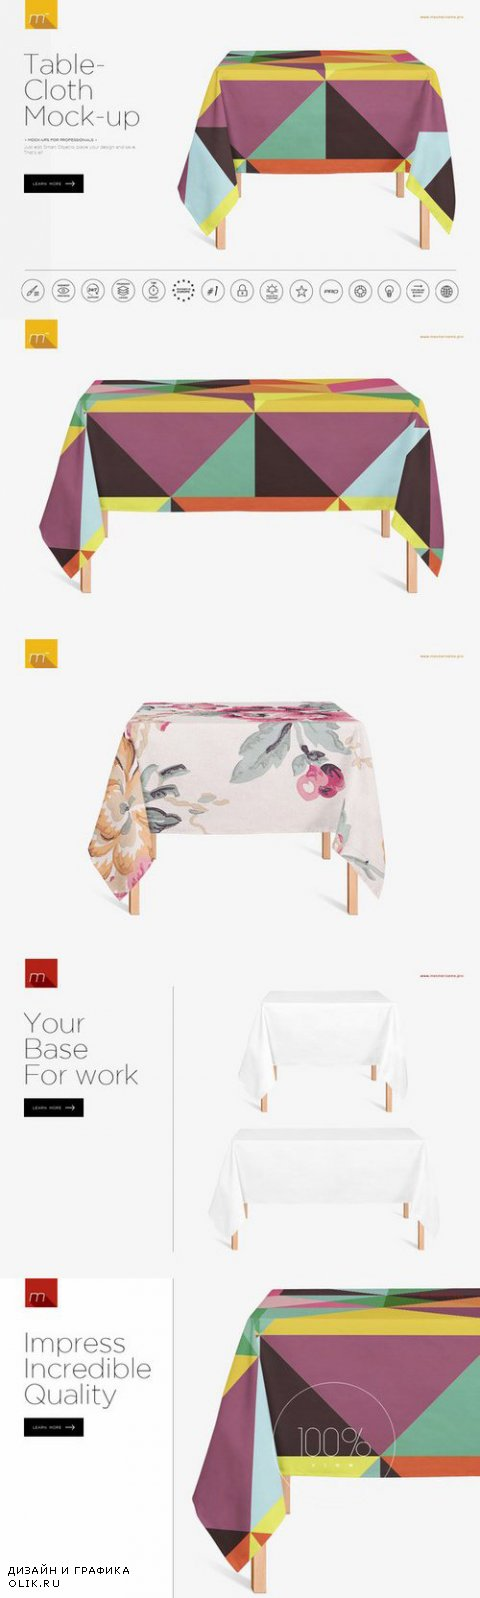 Tablecloth Mock-up - Creativemarket 458382